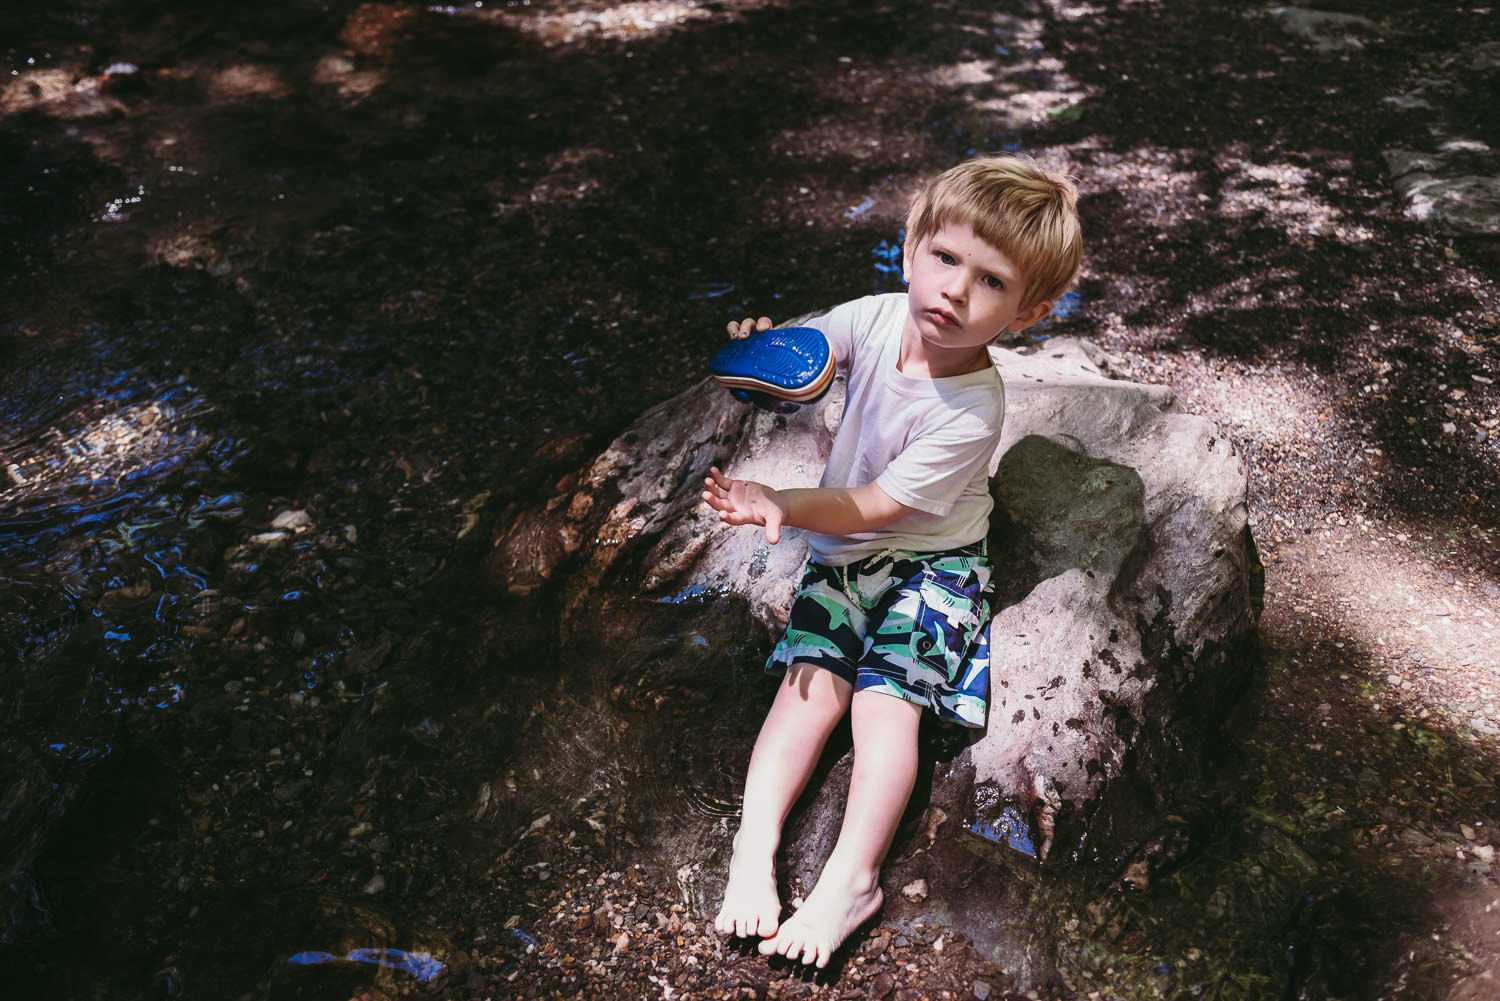 A little boy empties water out of his shoe while sitting on a rock by a creek.